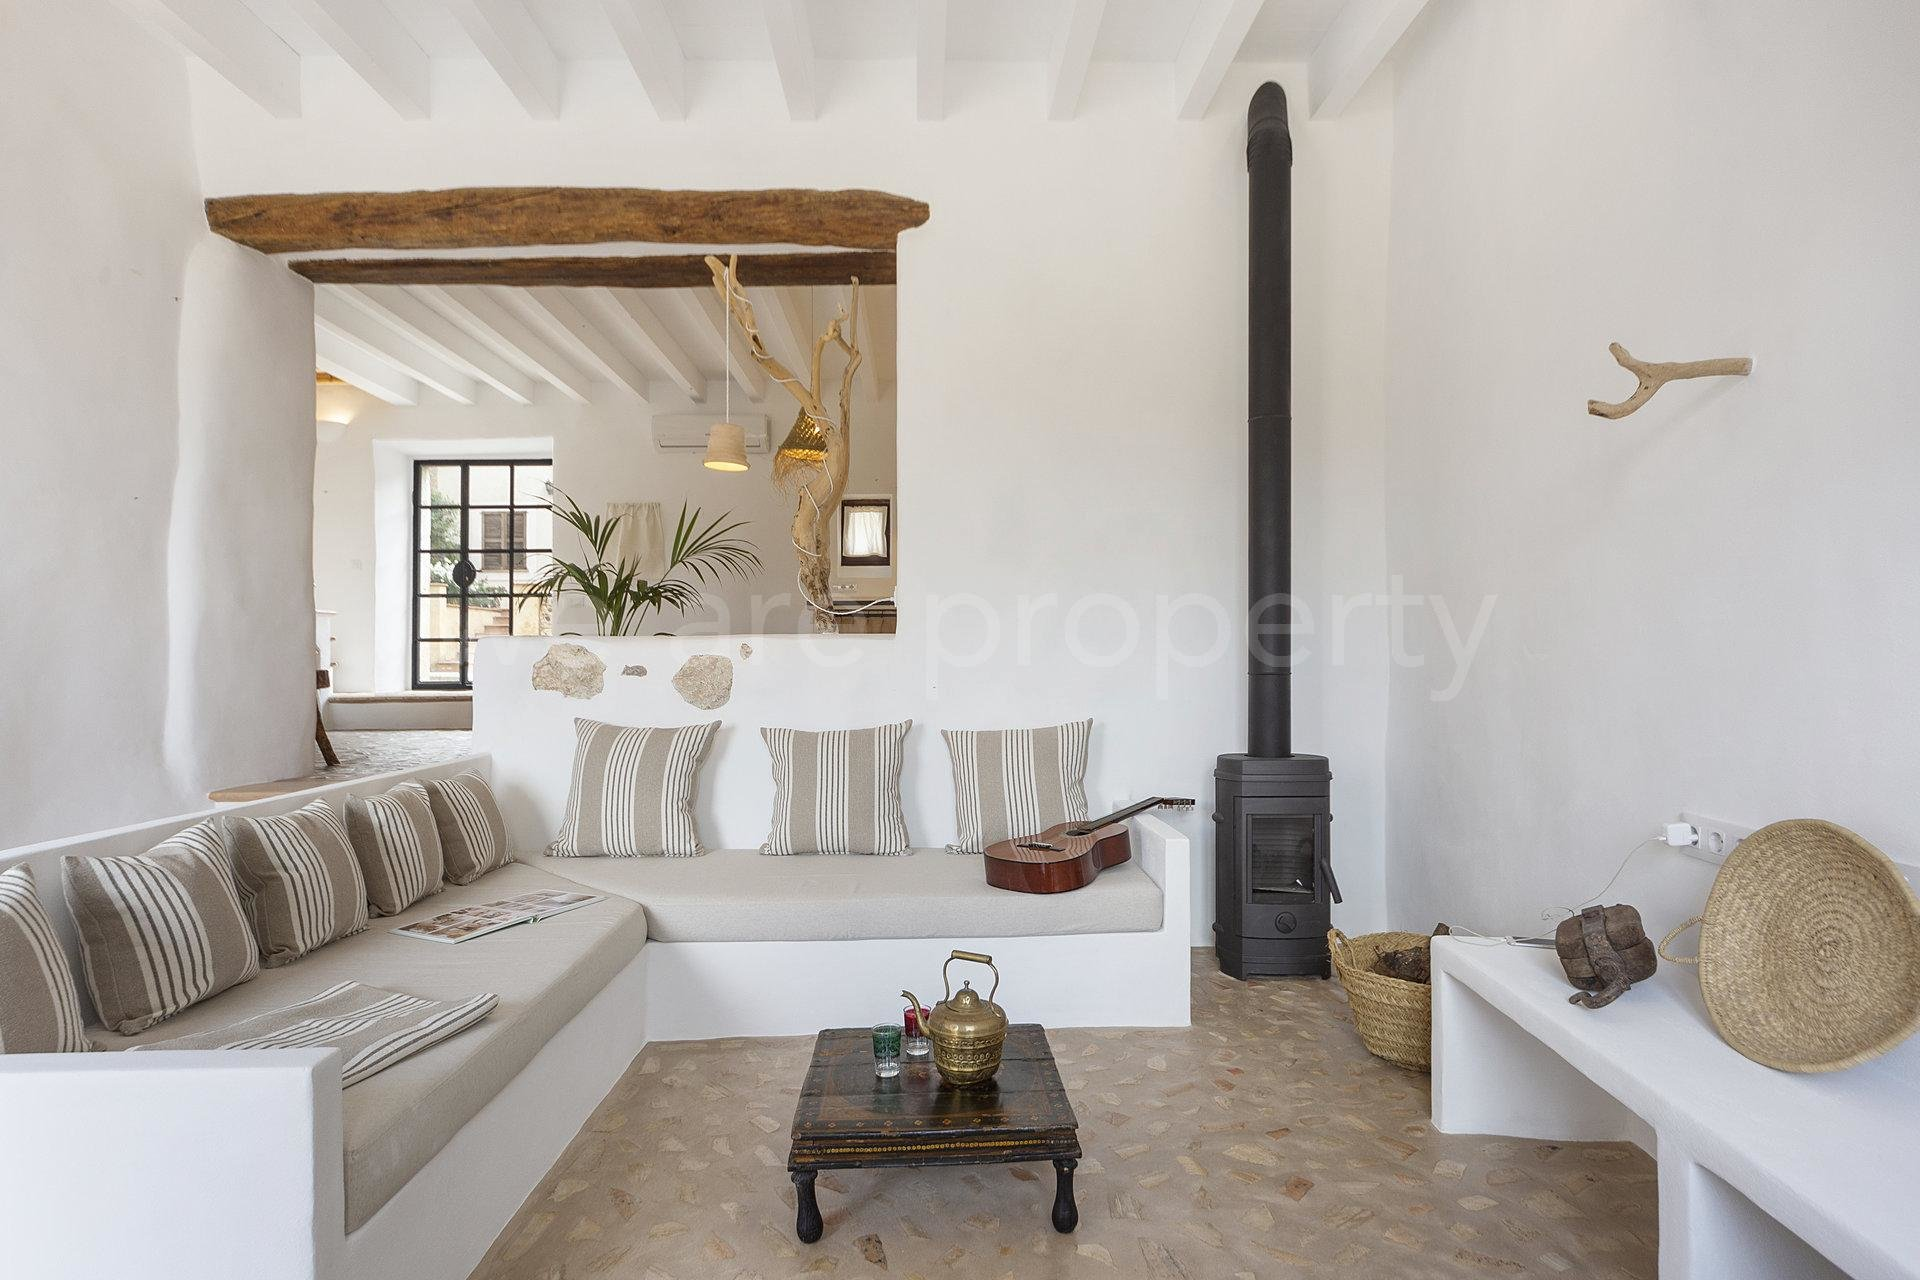 17th century town house completely renovated